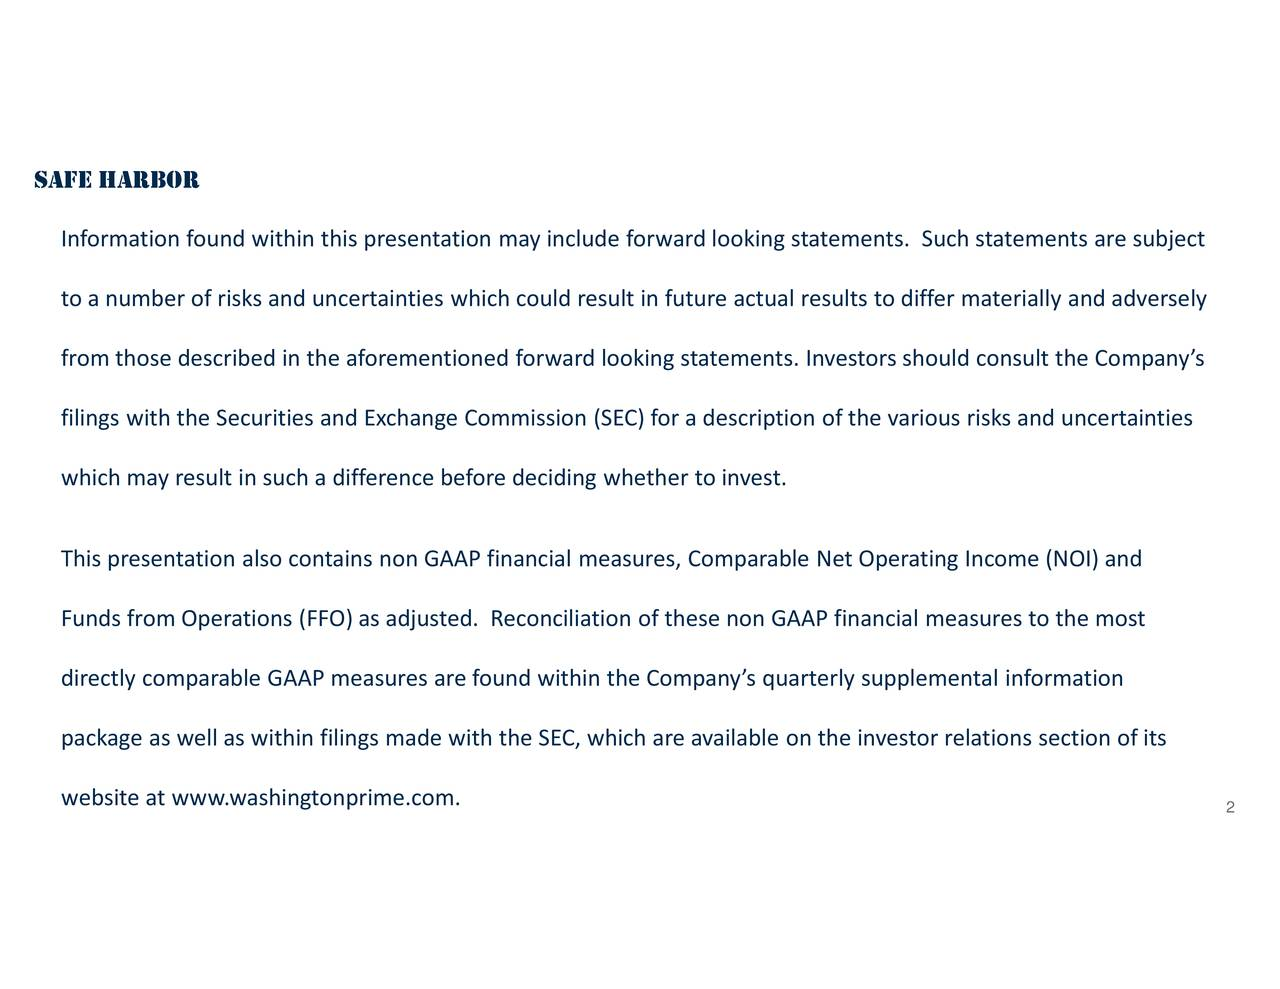 mpany's e subject ost ncertainties tion of its y and adversely the Company's quarterly supplemental information ude forward looking statements. Sucation of these non GAAP financial measures to the m result in future ng whether to invest.fer, which are available on the investor relations sec Inforto a nfomberiiseswsihrbmeacseuruteotftheclccorlwebsite at www.washingtonprime.com.it SAFE HARBOR